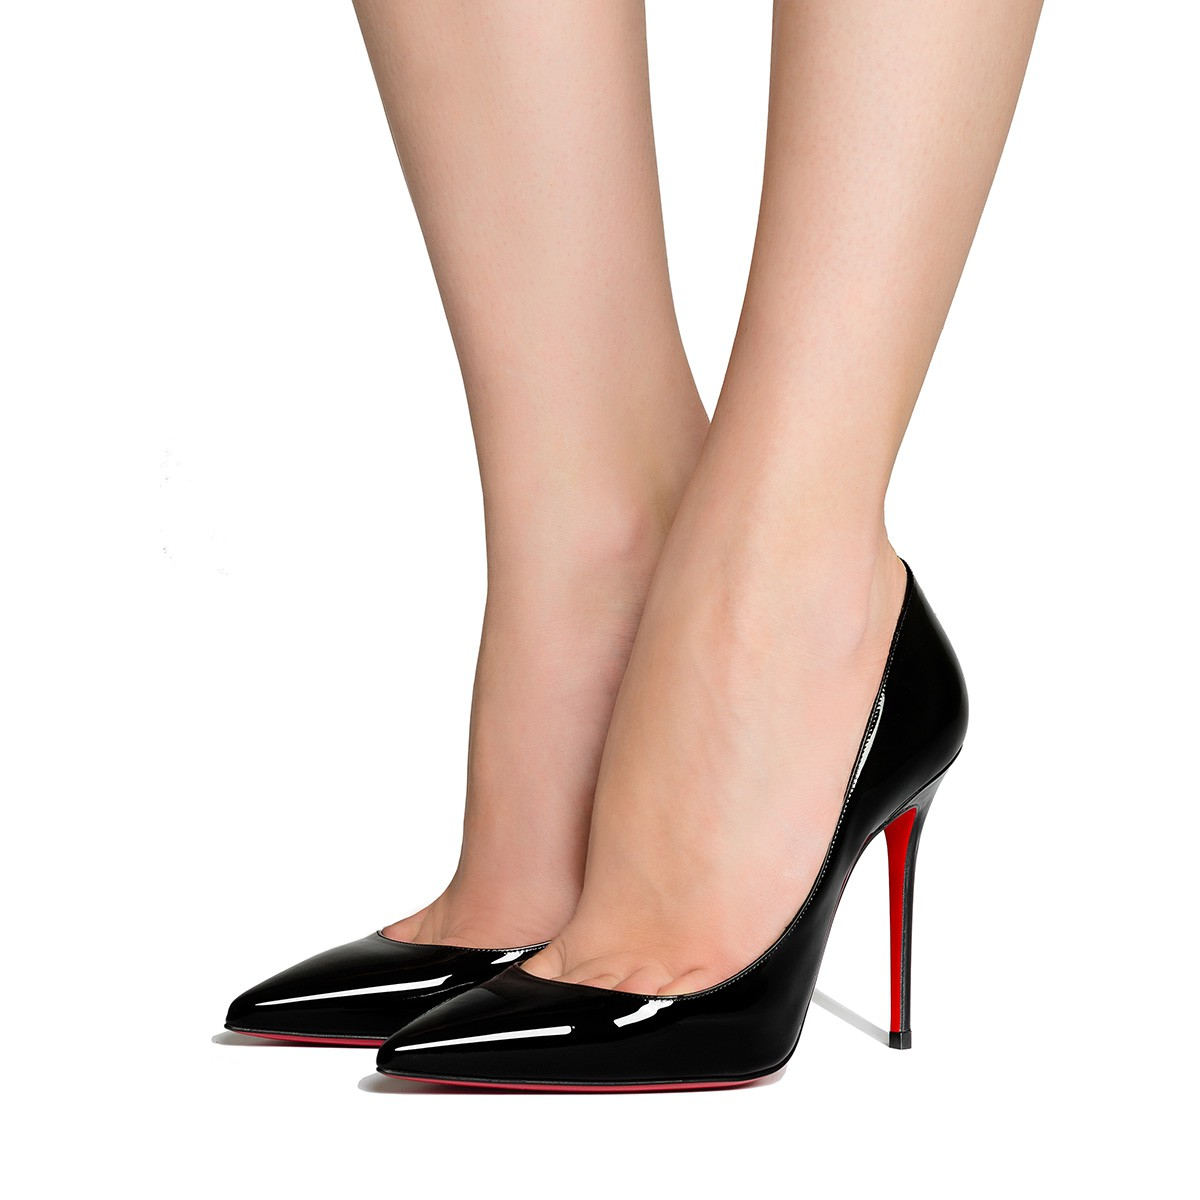 a0e99052fba Kate 100 Black Patent Leather - Women Shoes - Christian Louboutin